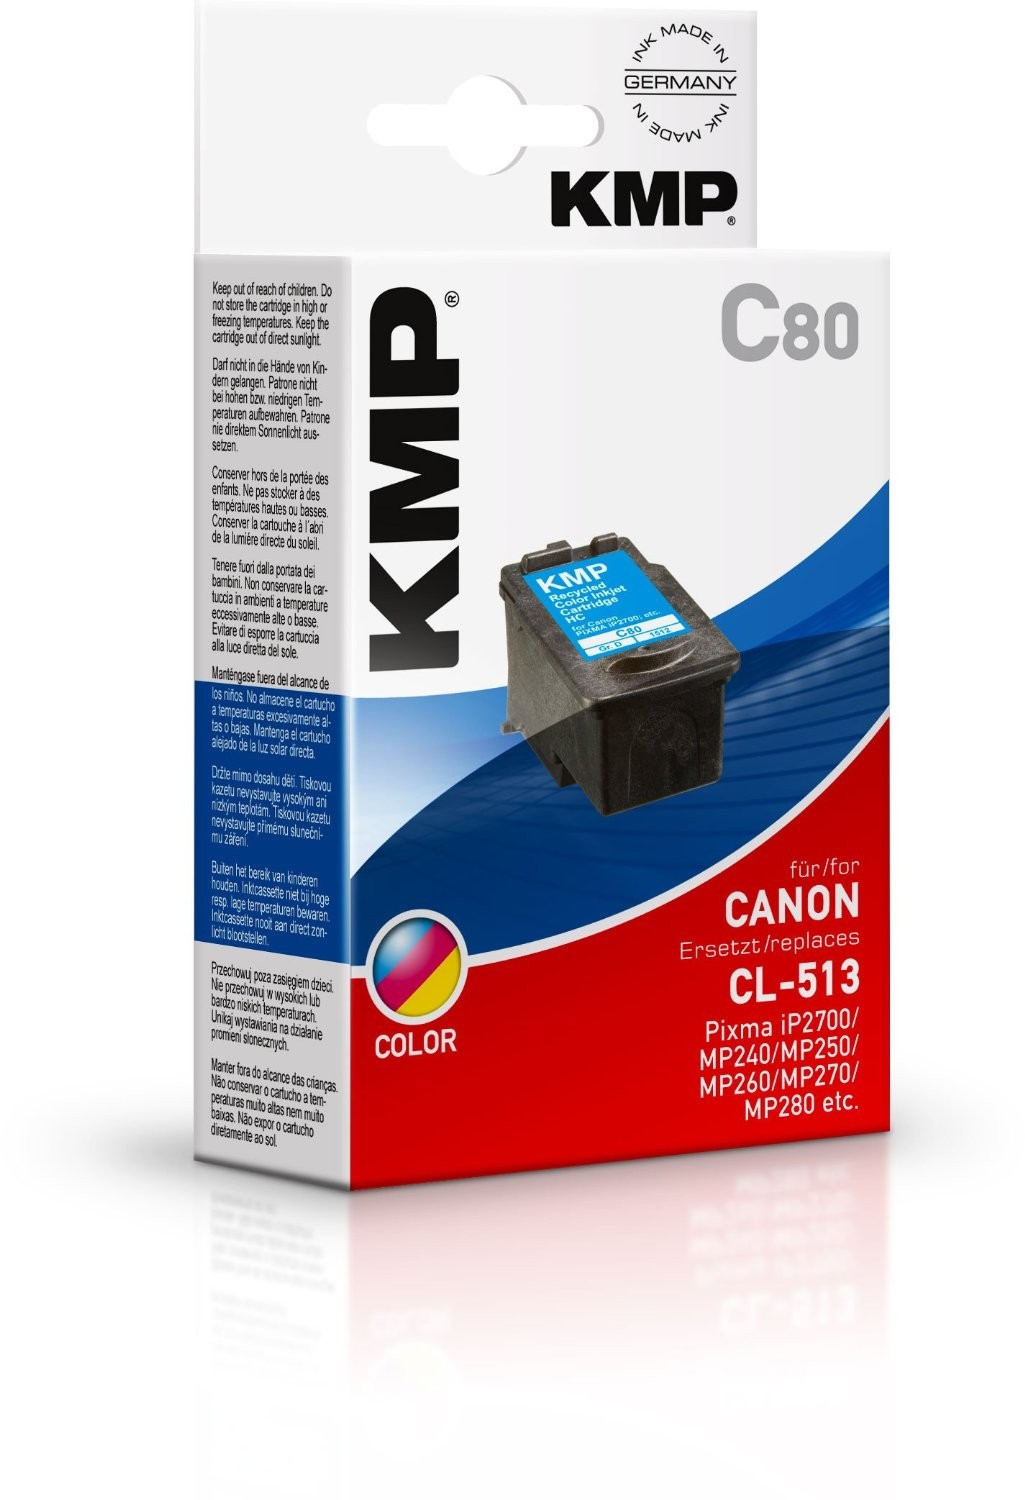 KMP C80 (CL-513) Tinte color